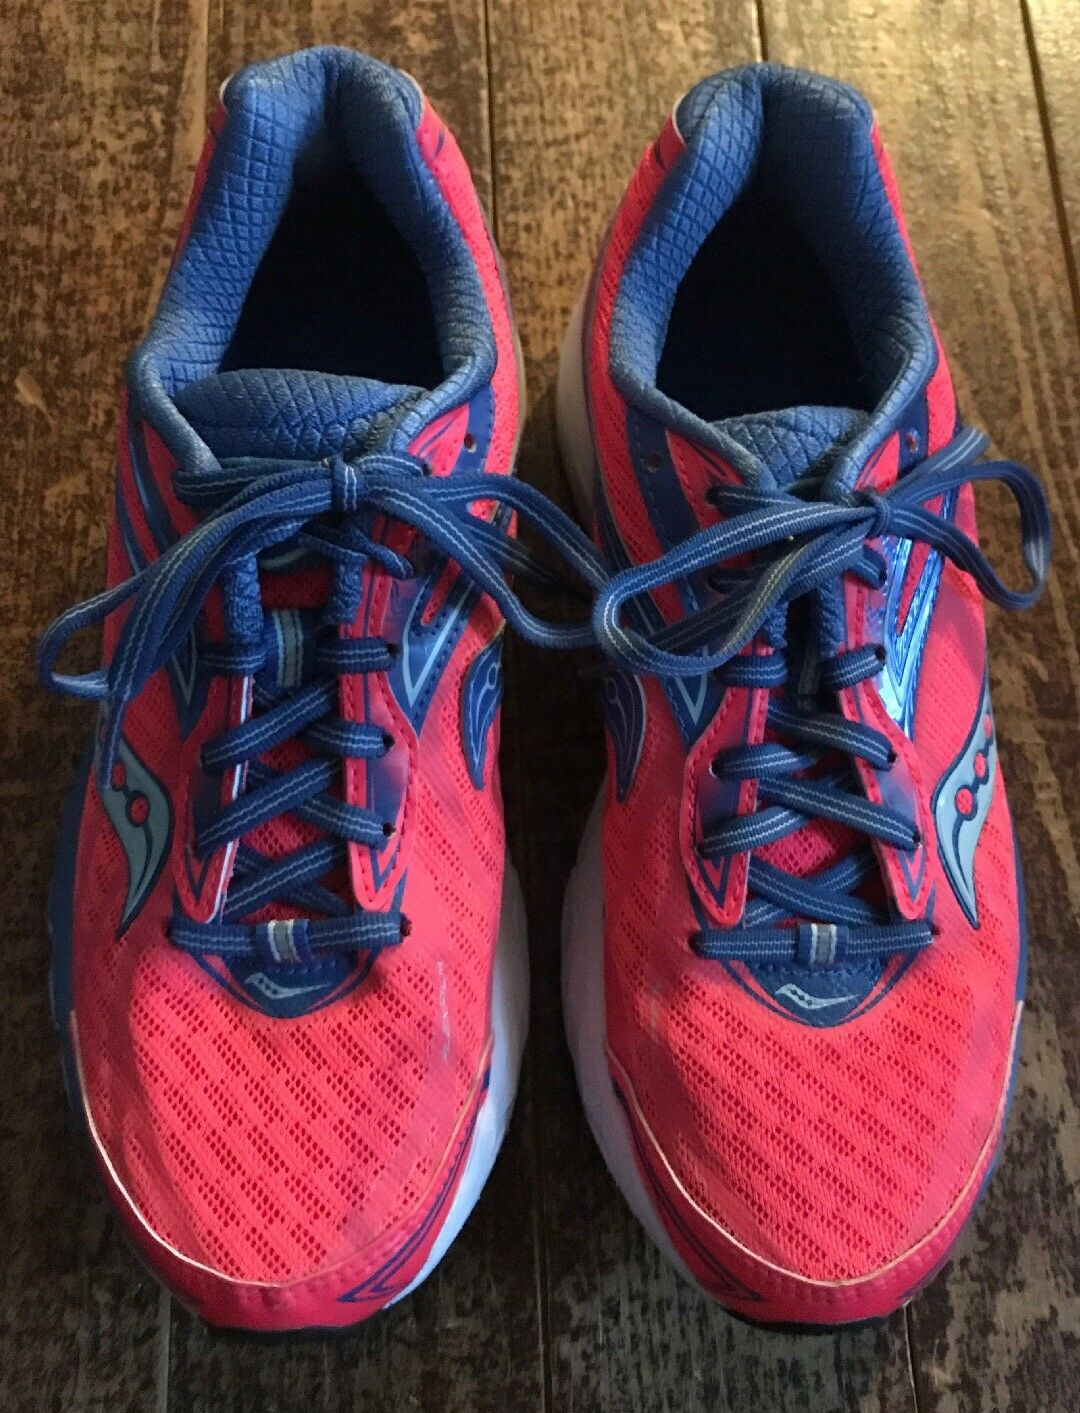 Saucony Women's Ride 8 Pink bluee Running shoes Trainers Size 8 Medium Used.